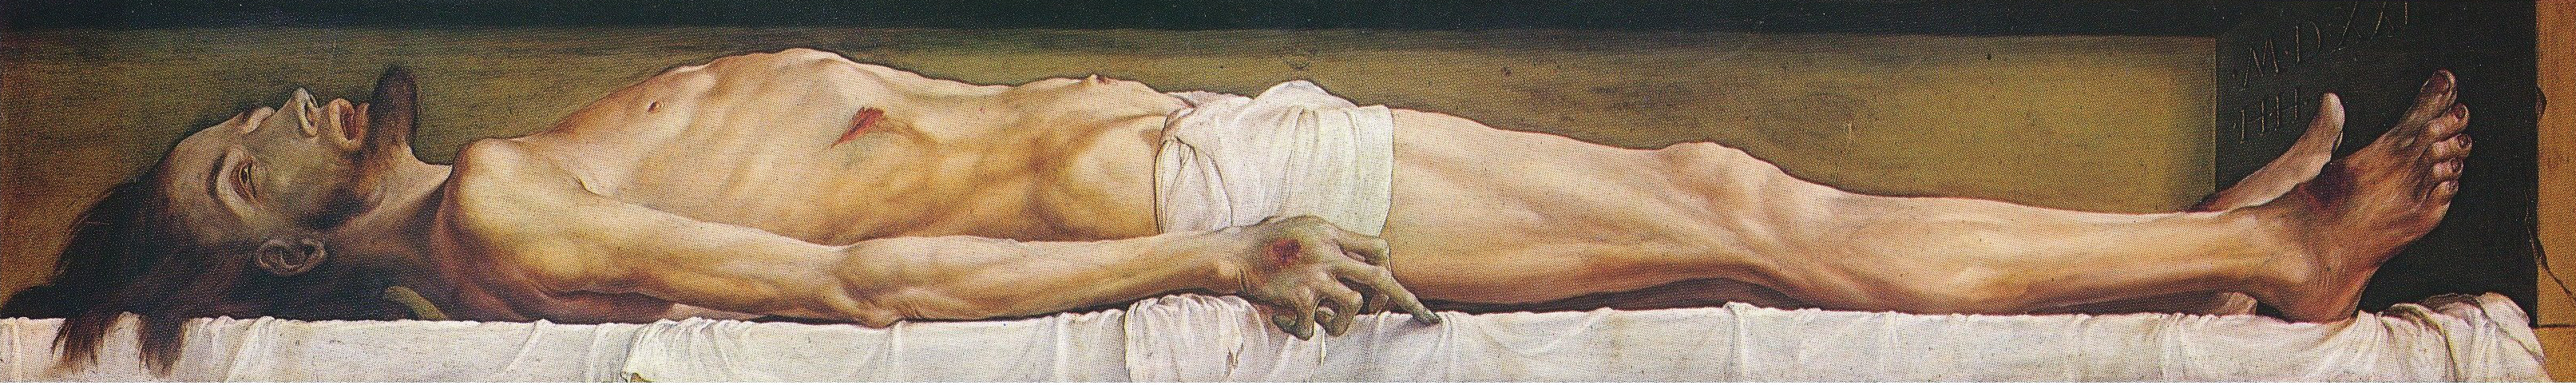 Hans_Holbein-_The_Body_of_the_Dead_Chris